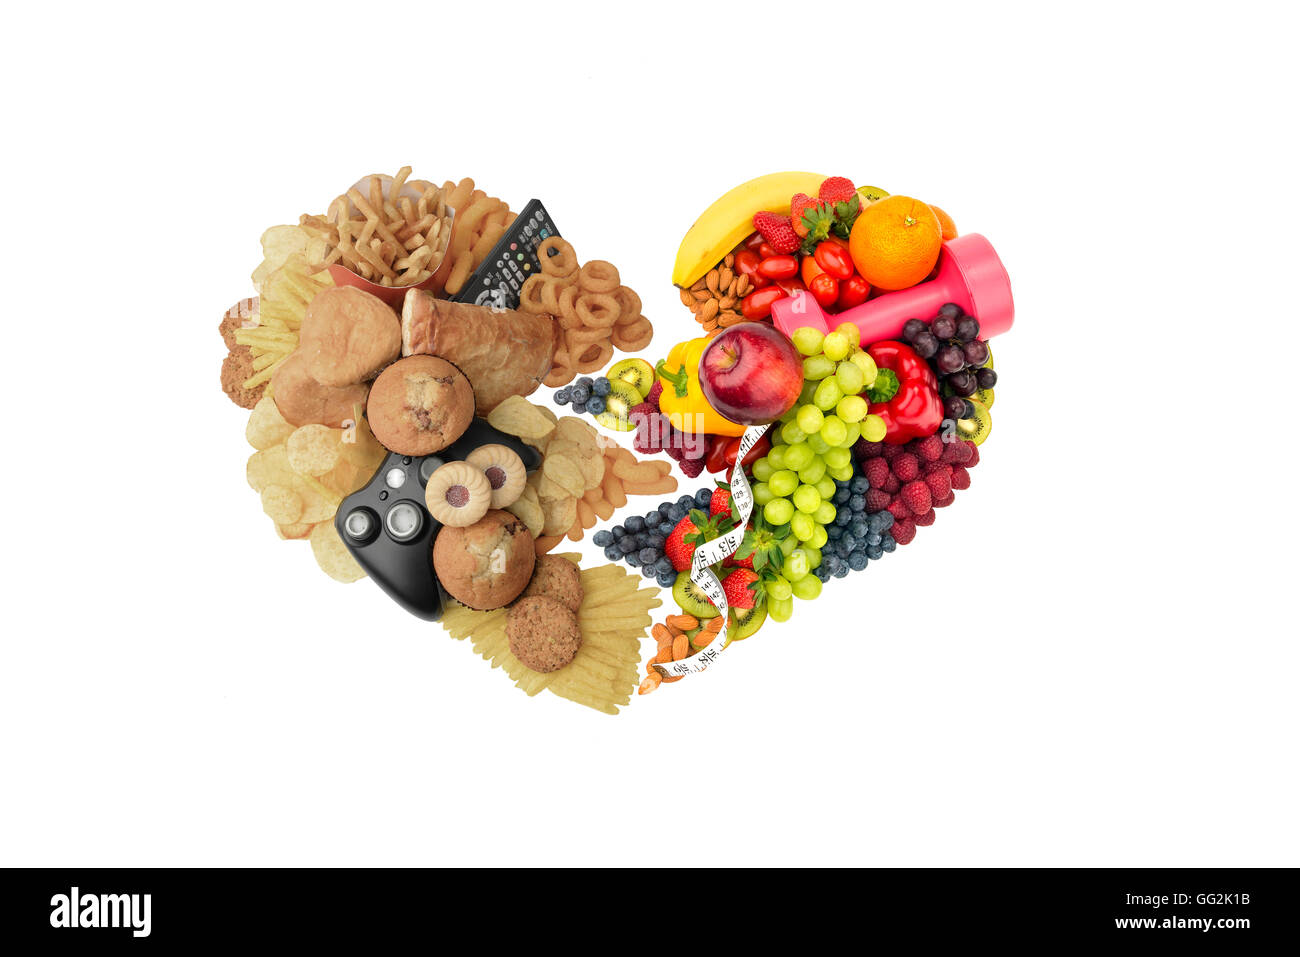 Healthy lifestyle  & food diet  and Unhealthy  lifestyle & food diet  two half of heart concept - Stock Image